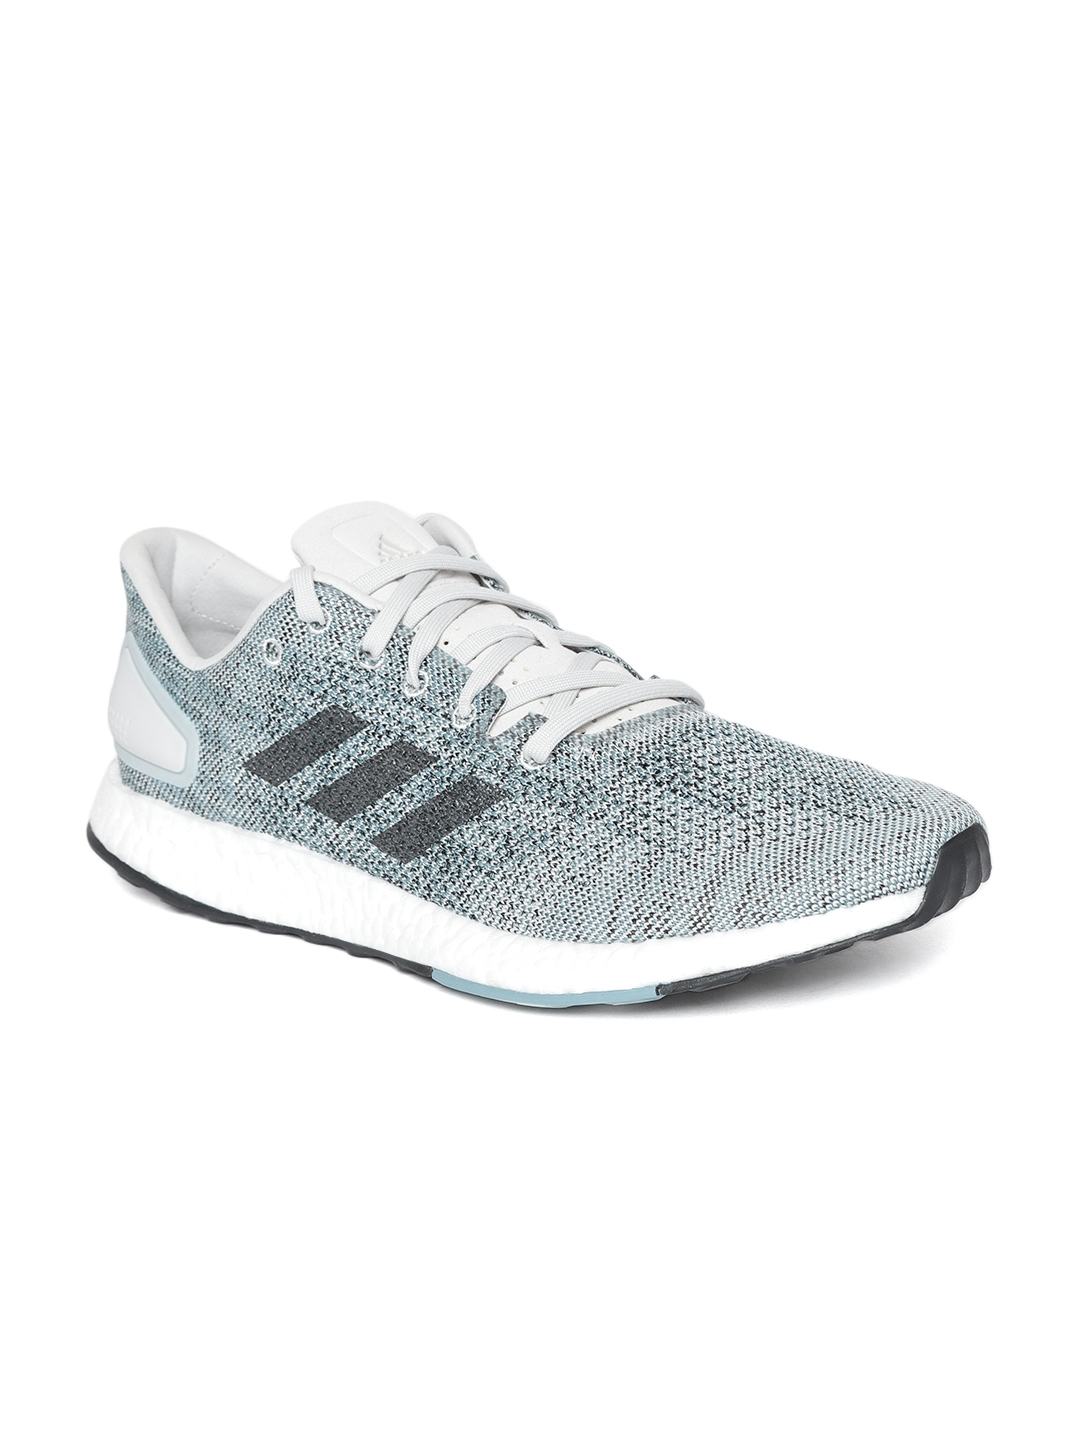 d8ca3cf40148d Buy ADIDAS Men Grey   Off White Pure Boost DPR Running Shoes - Sports Shoes  for Men 6842158